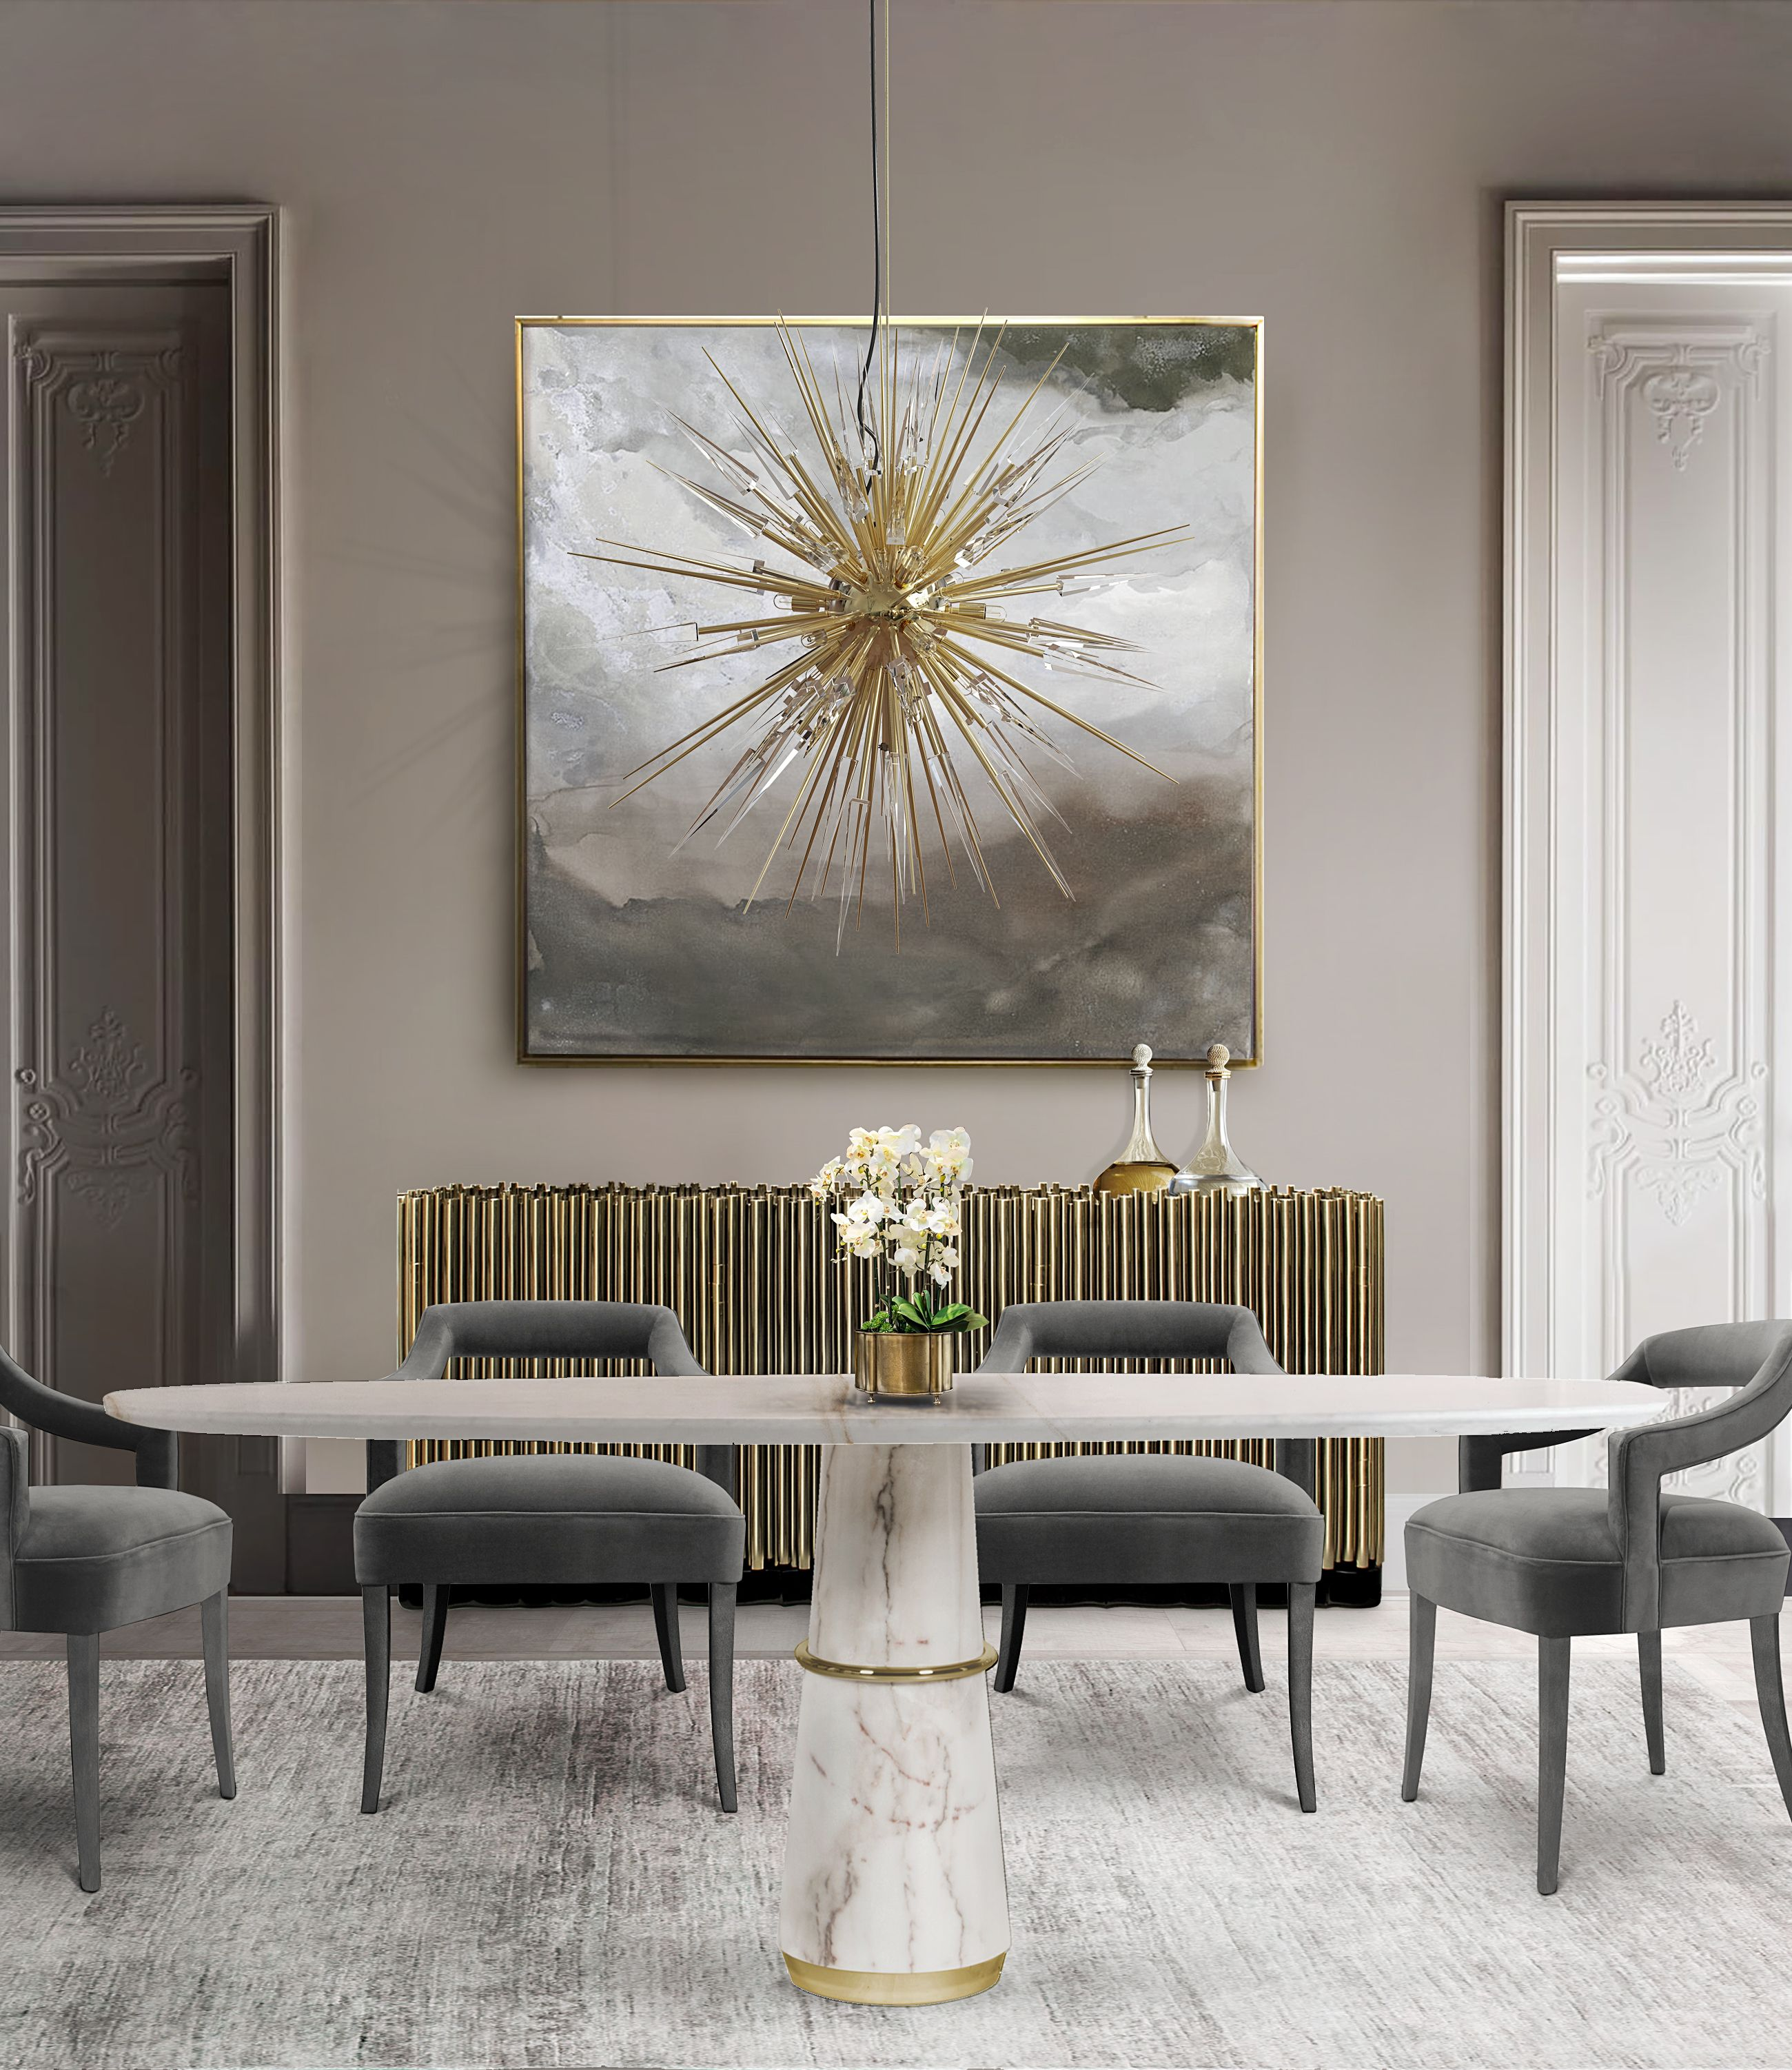 Get Inspired With These Modern Living Room Decorating Ideas: Elegant Dining Room Ideas You Have To Use This Fall